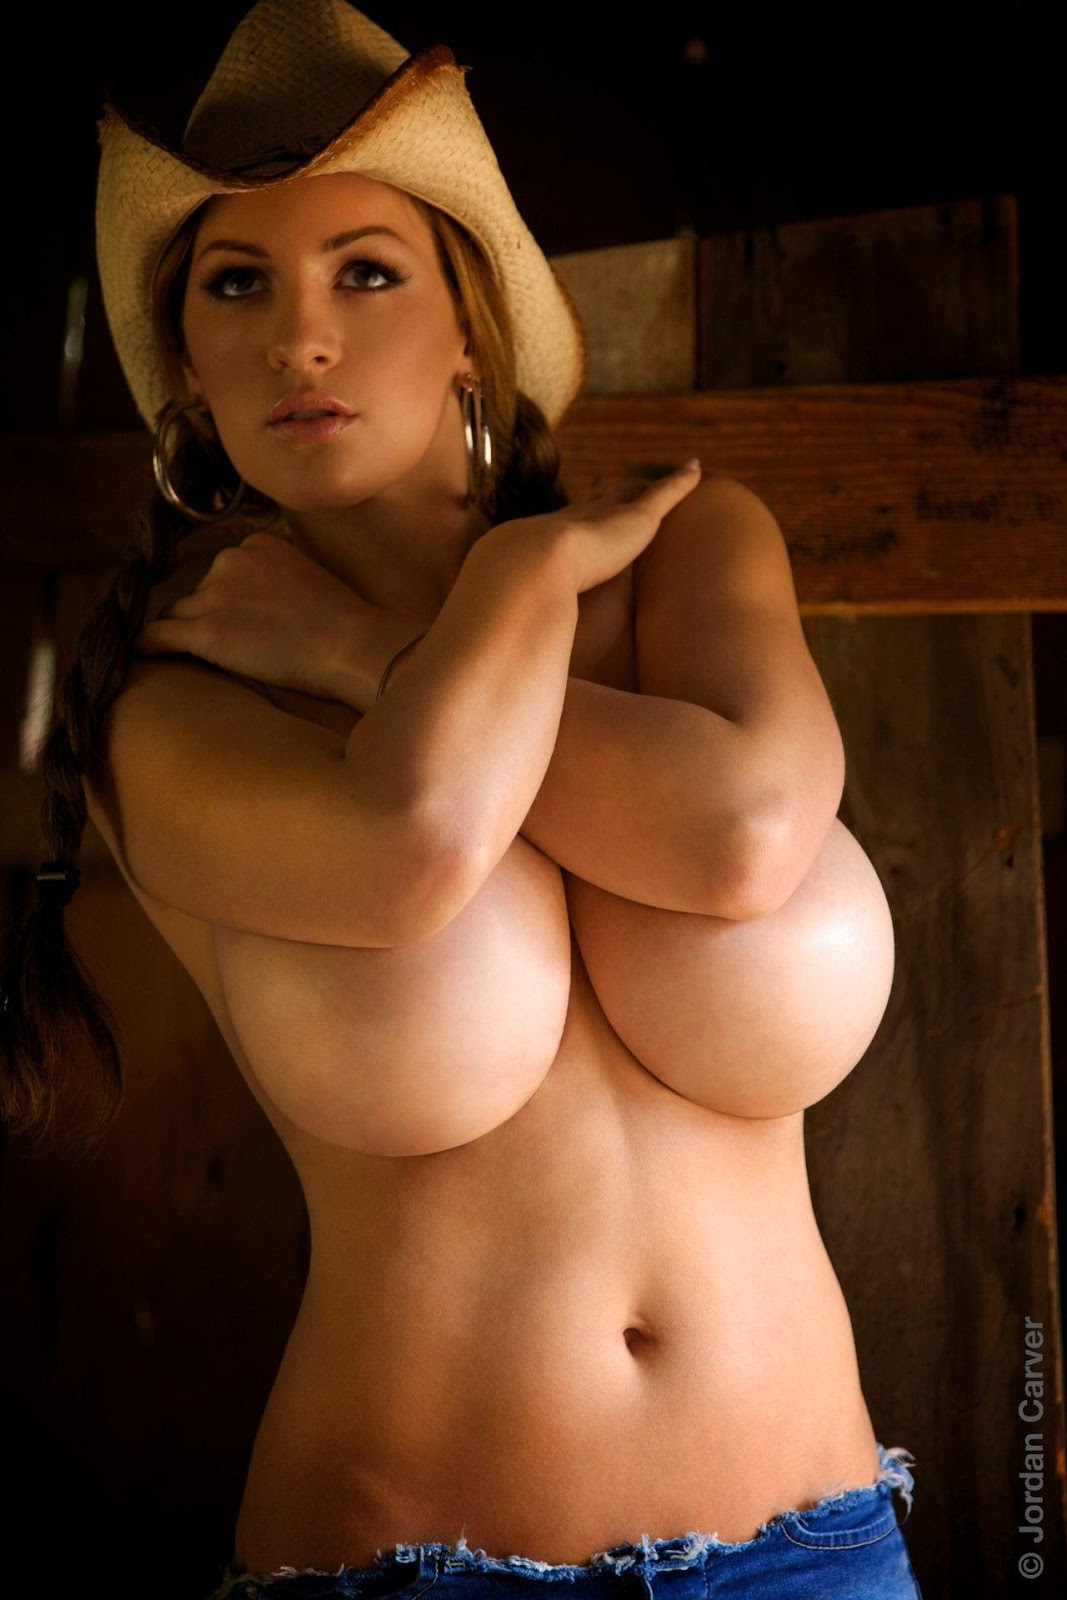 Shall jordan carver nude cowgirl congratulate, the